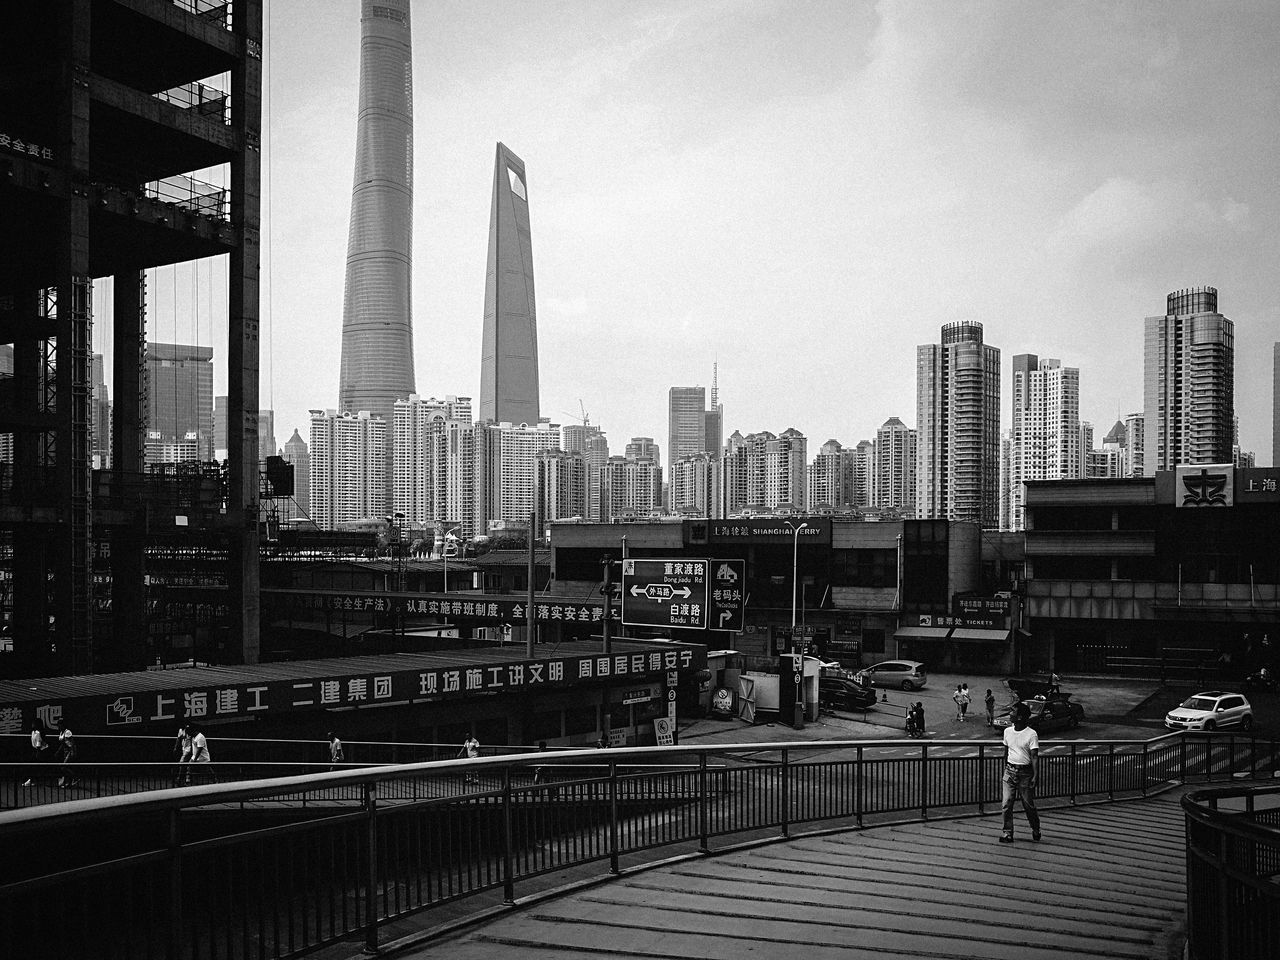 architecture, built structure, city, skyscraper, building exterior, sky, modern, transportation, bridge - man made structure, day, city life, cityscape, urban skyline, outdoors, travel destinations, real people